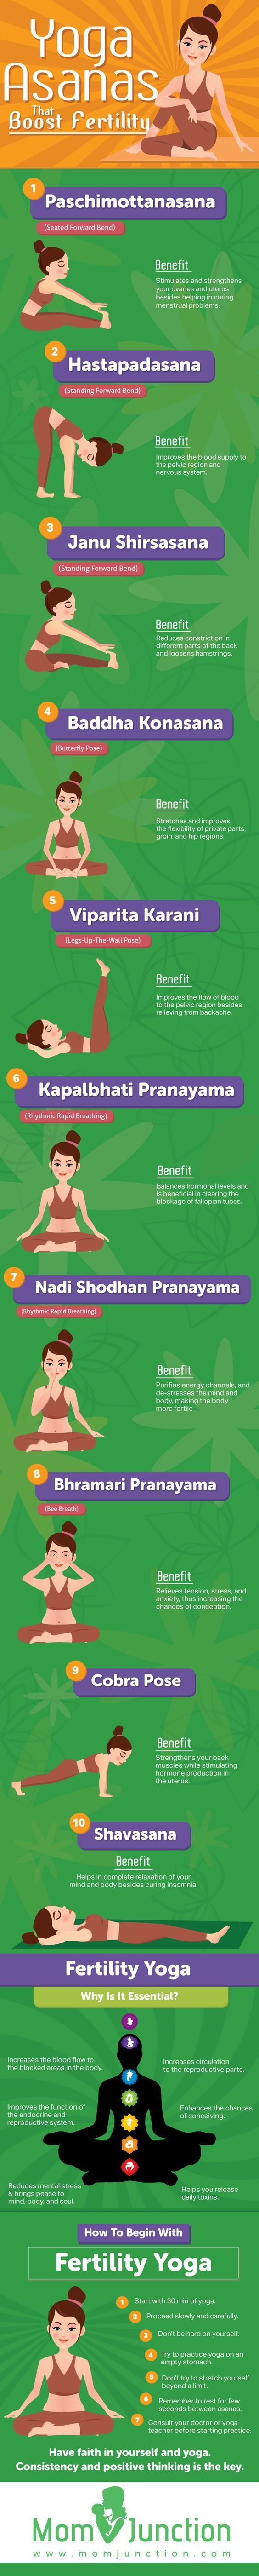 Practicing yoga during pregnancy balances emotional flux and hormone levels, so try these 14 yoga asanas when trying to conceive!